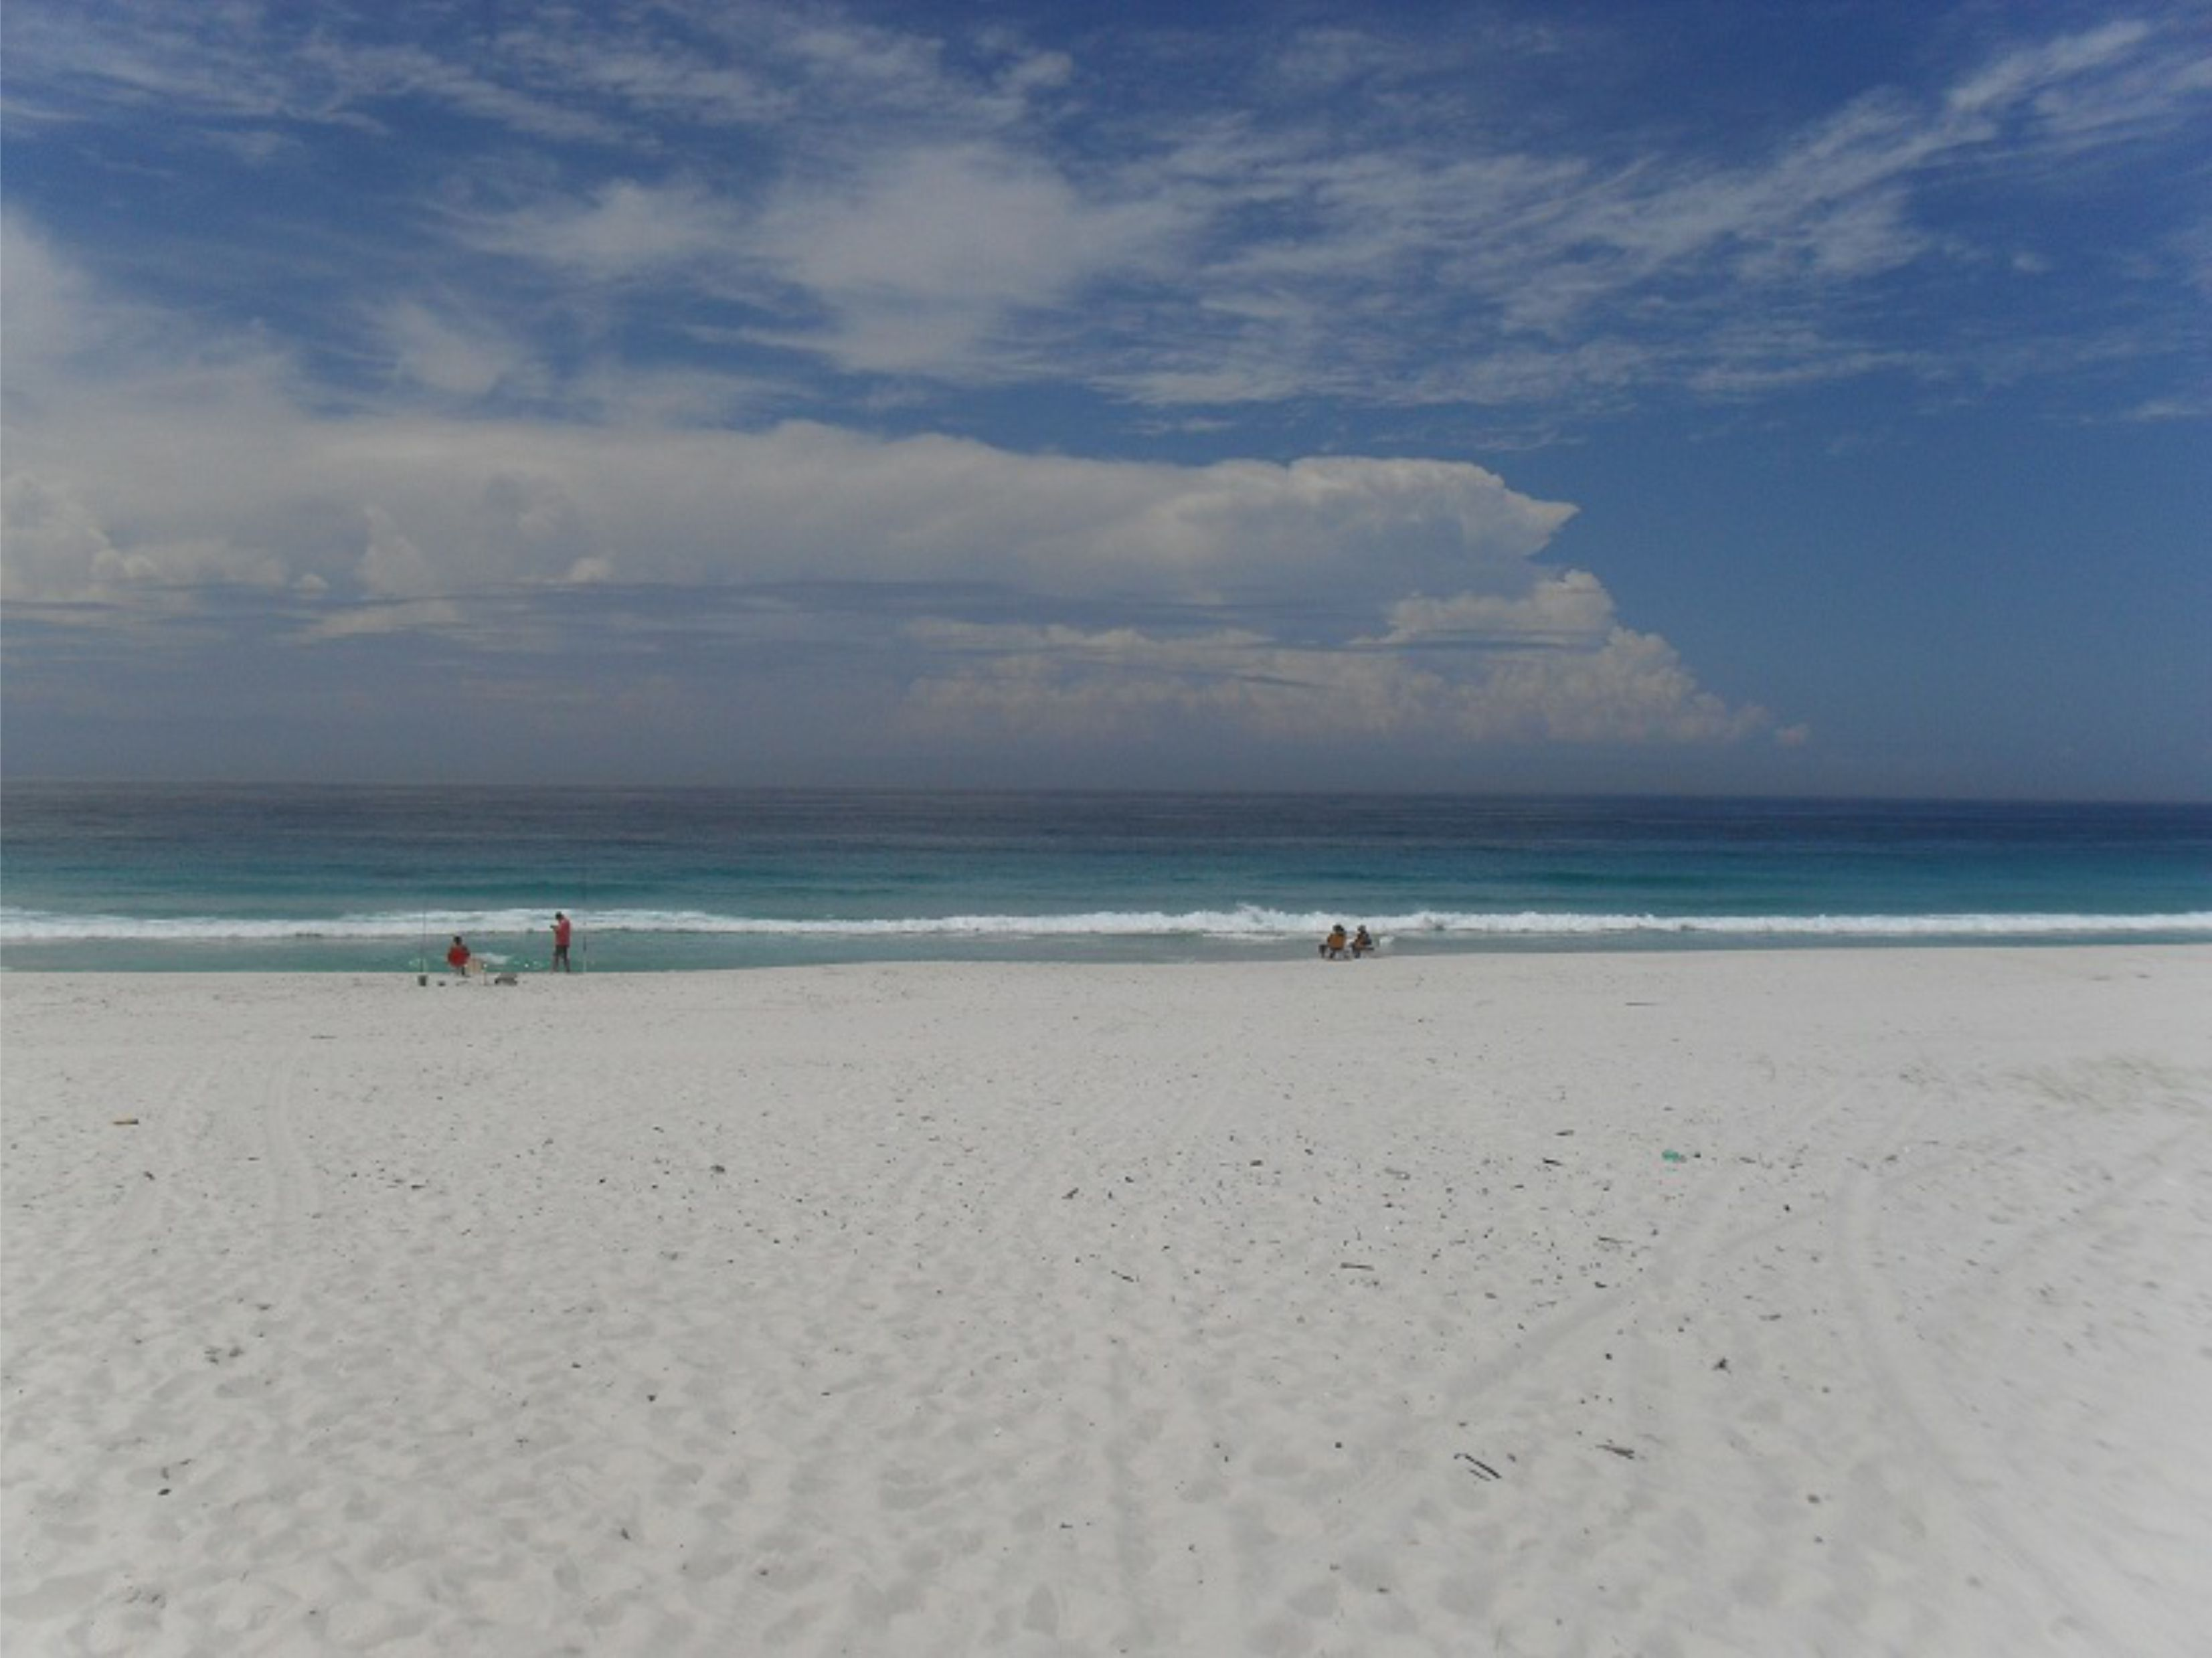 Praia da Figueira, Arraial do Cabo